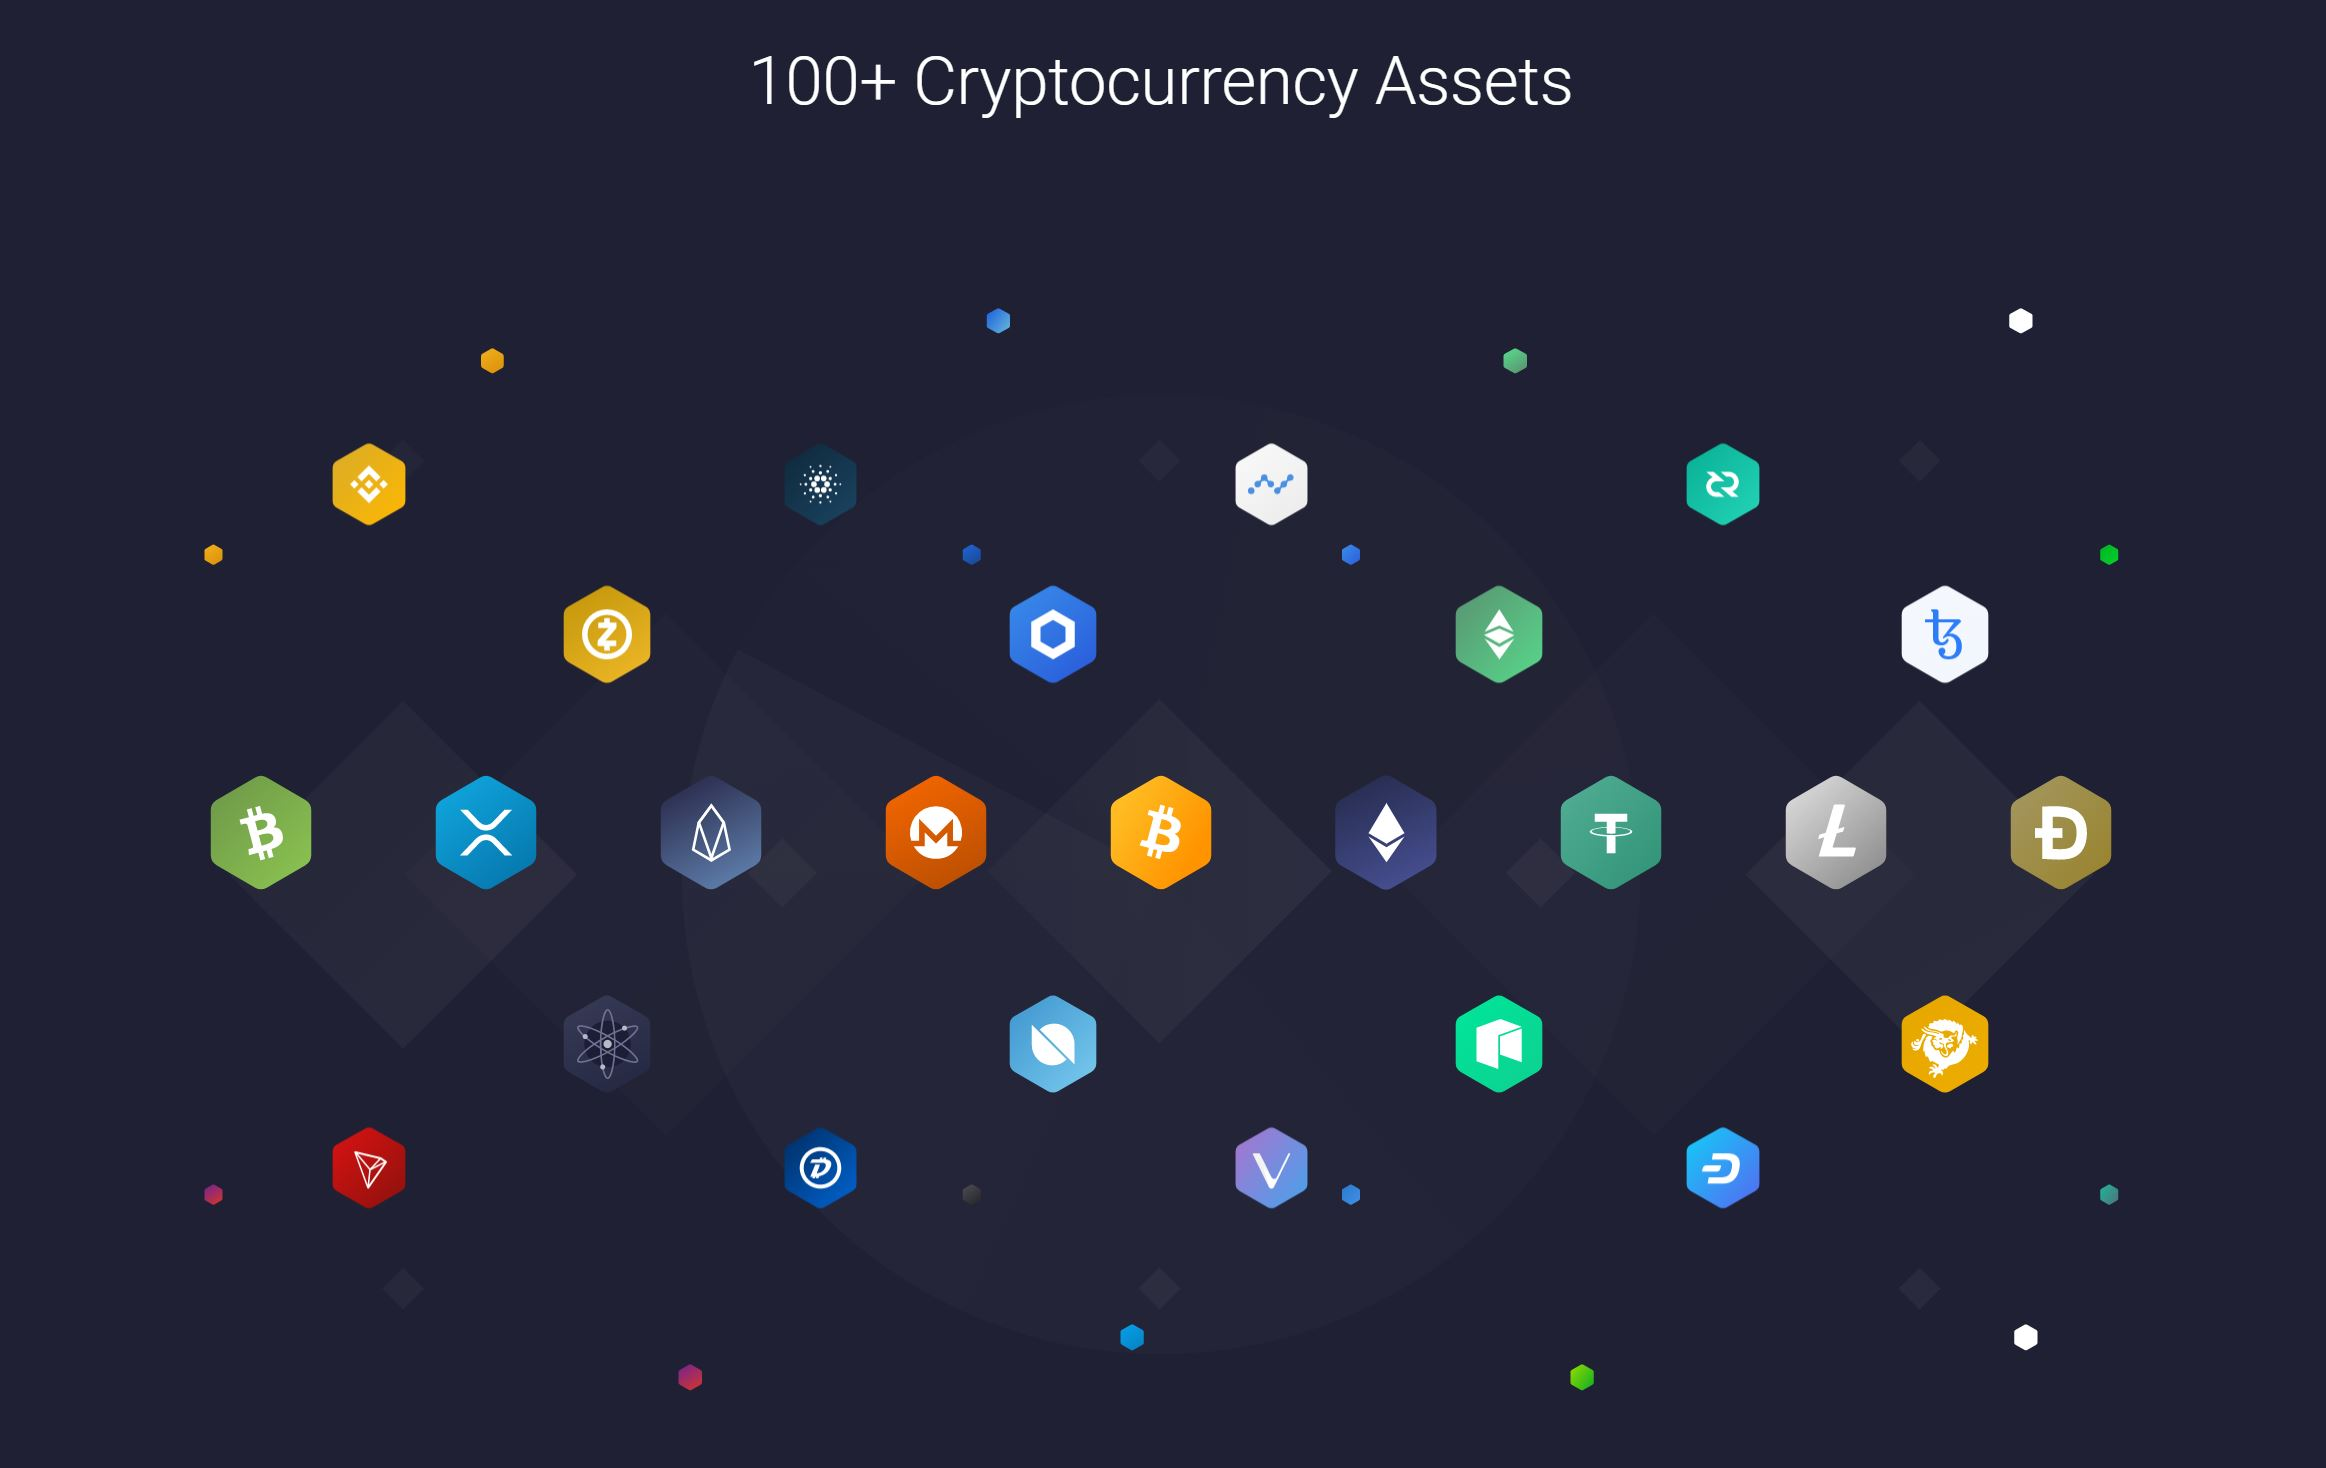 Exodus Wallet supported cryptocurrencies